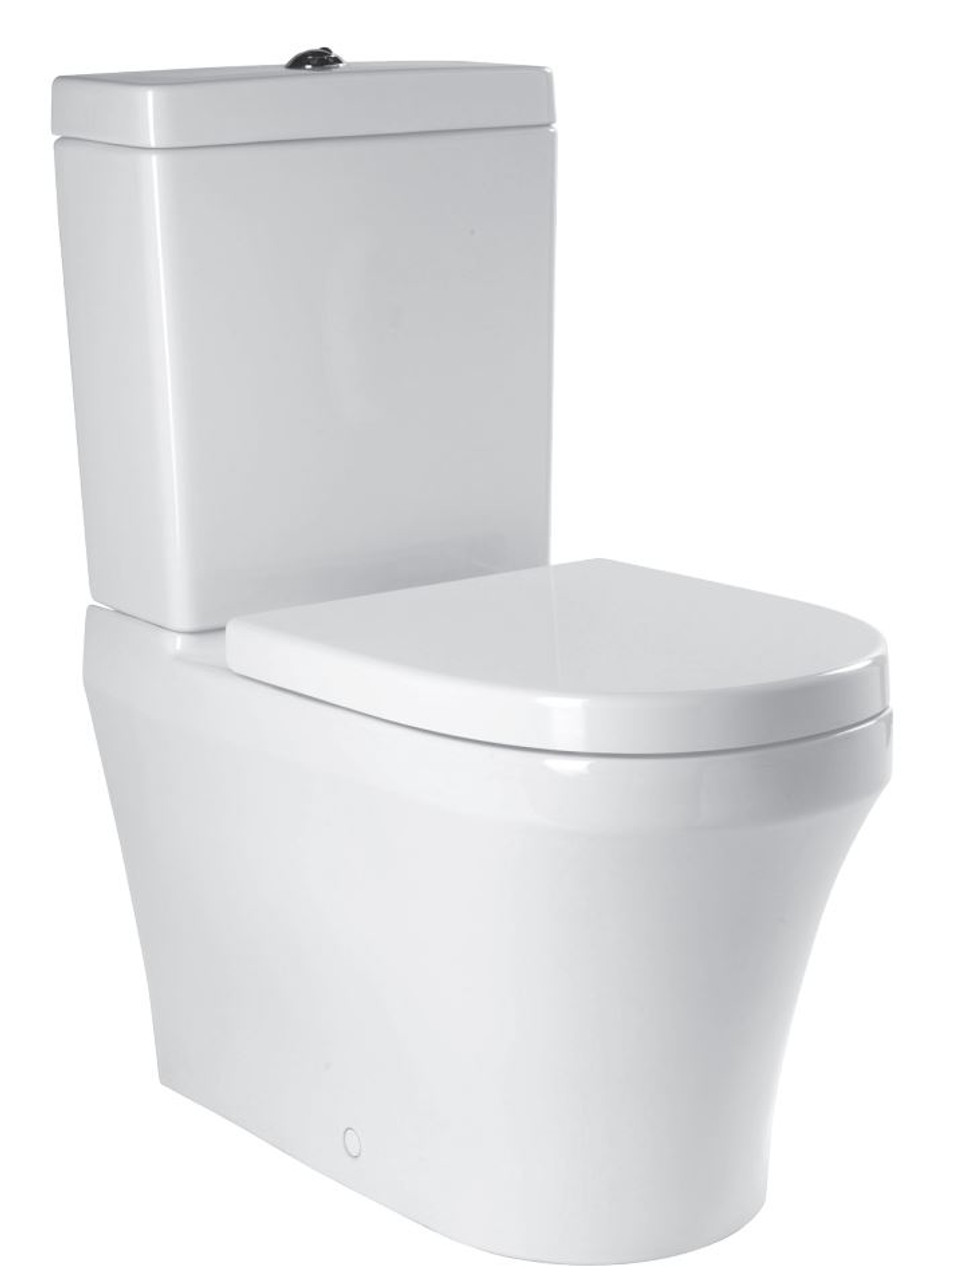 Studio Bagno Q Back To Wall Suite Wall Faced Back Inlet Q001